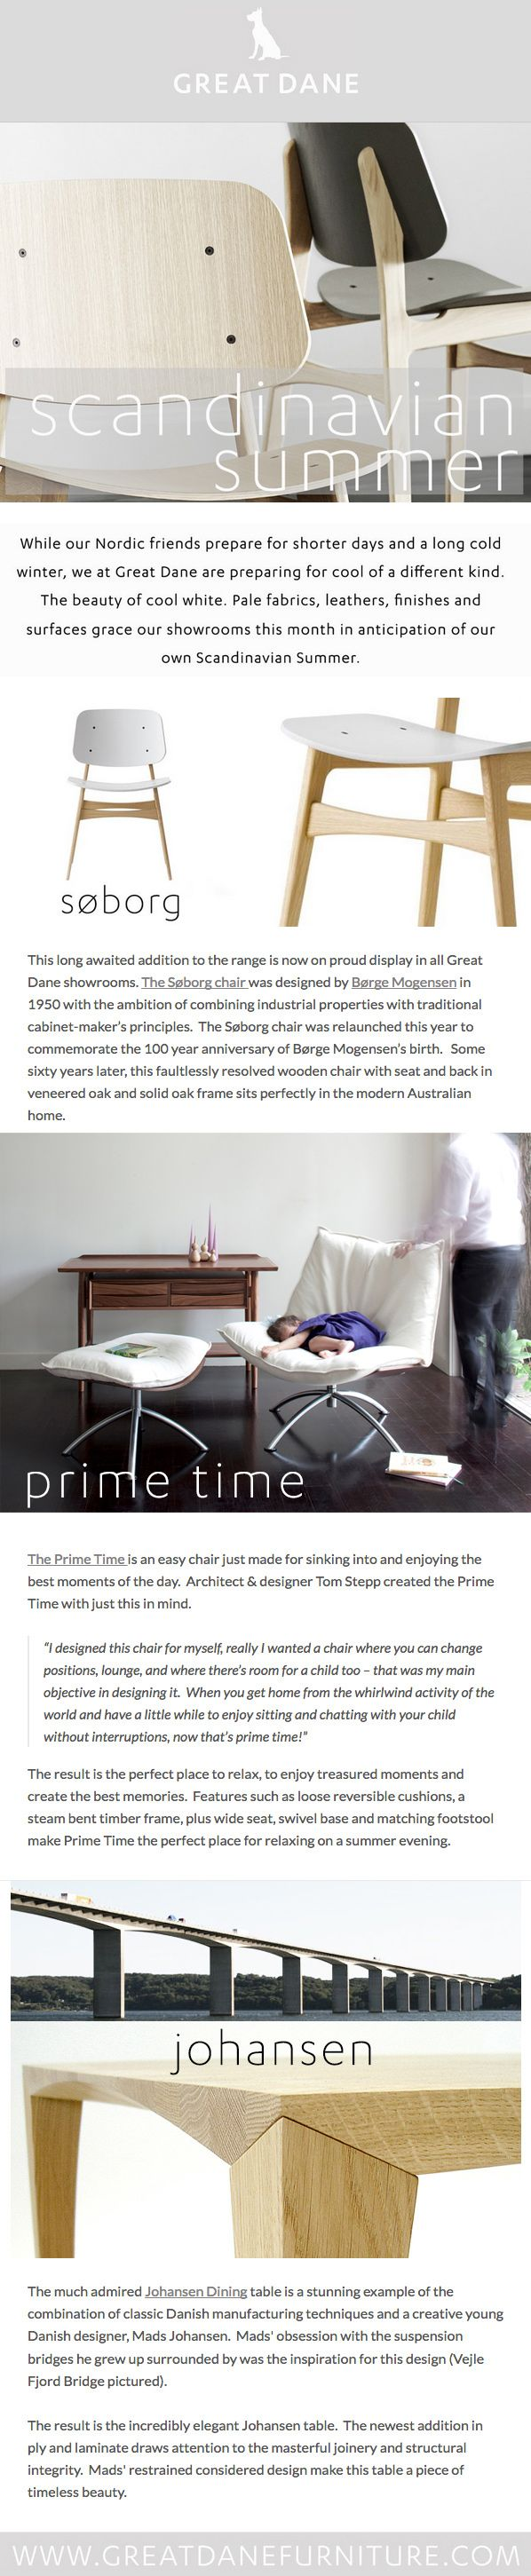 Introducing The Soborg Chair by Borge Mogensen.